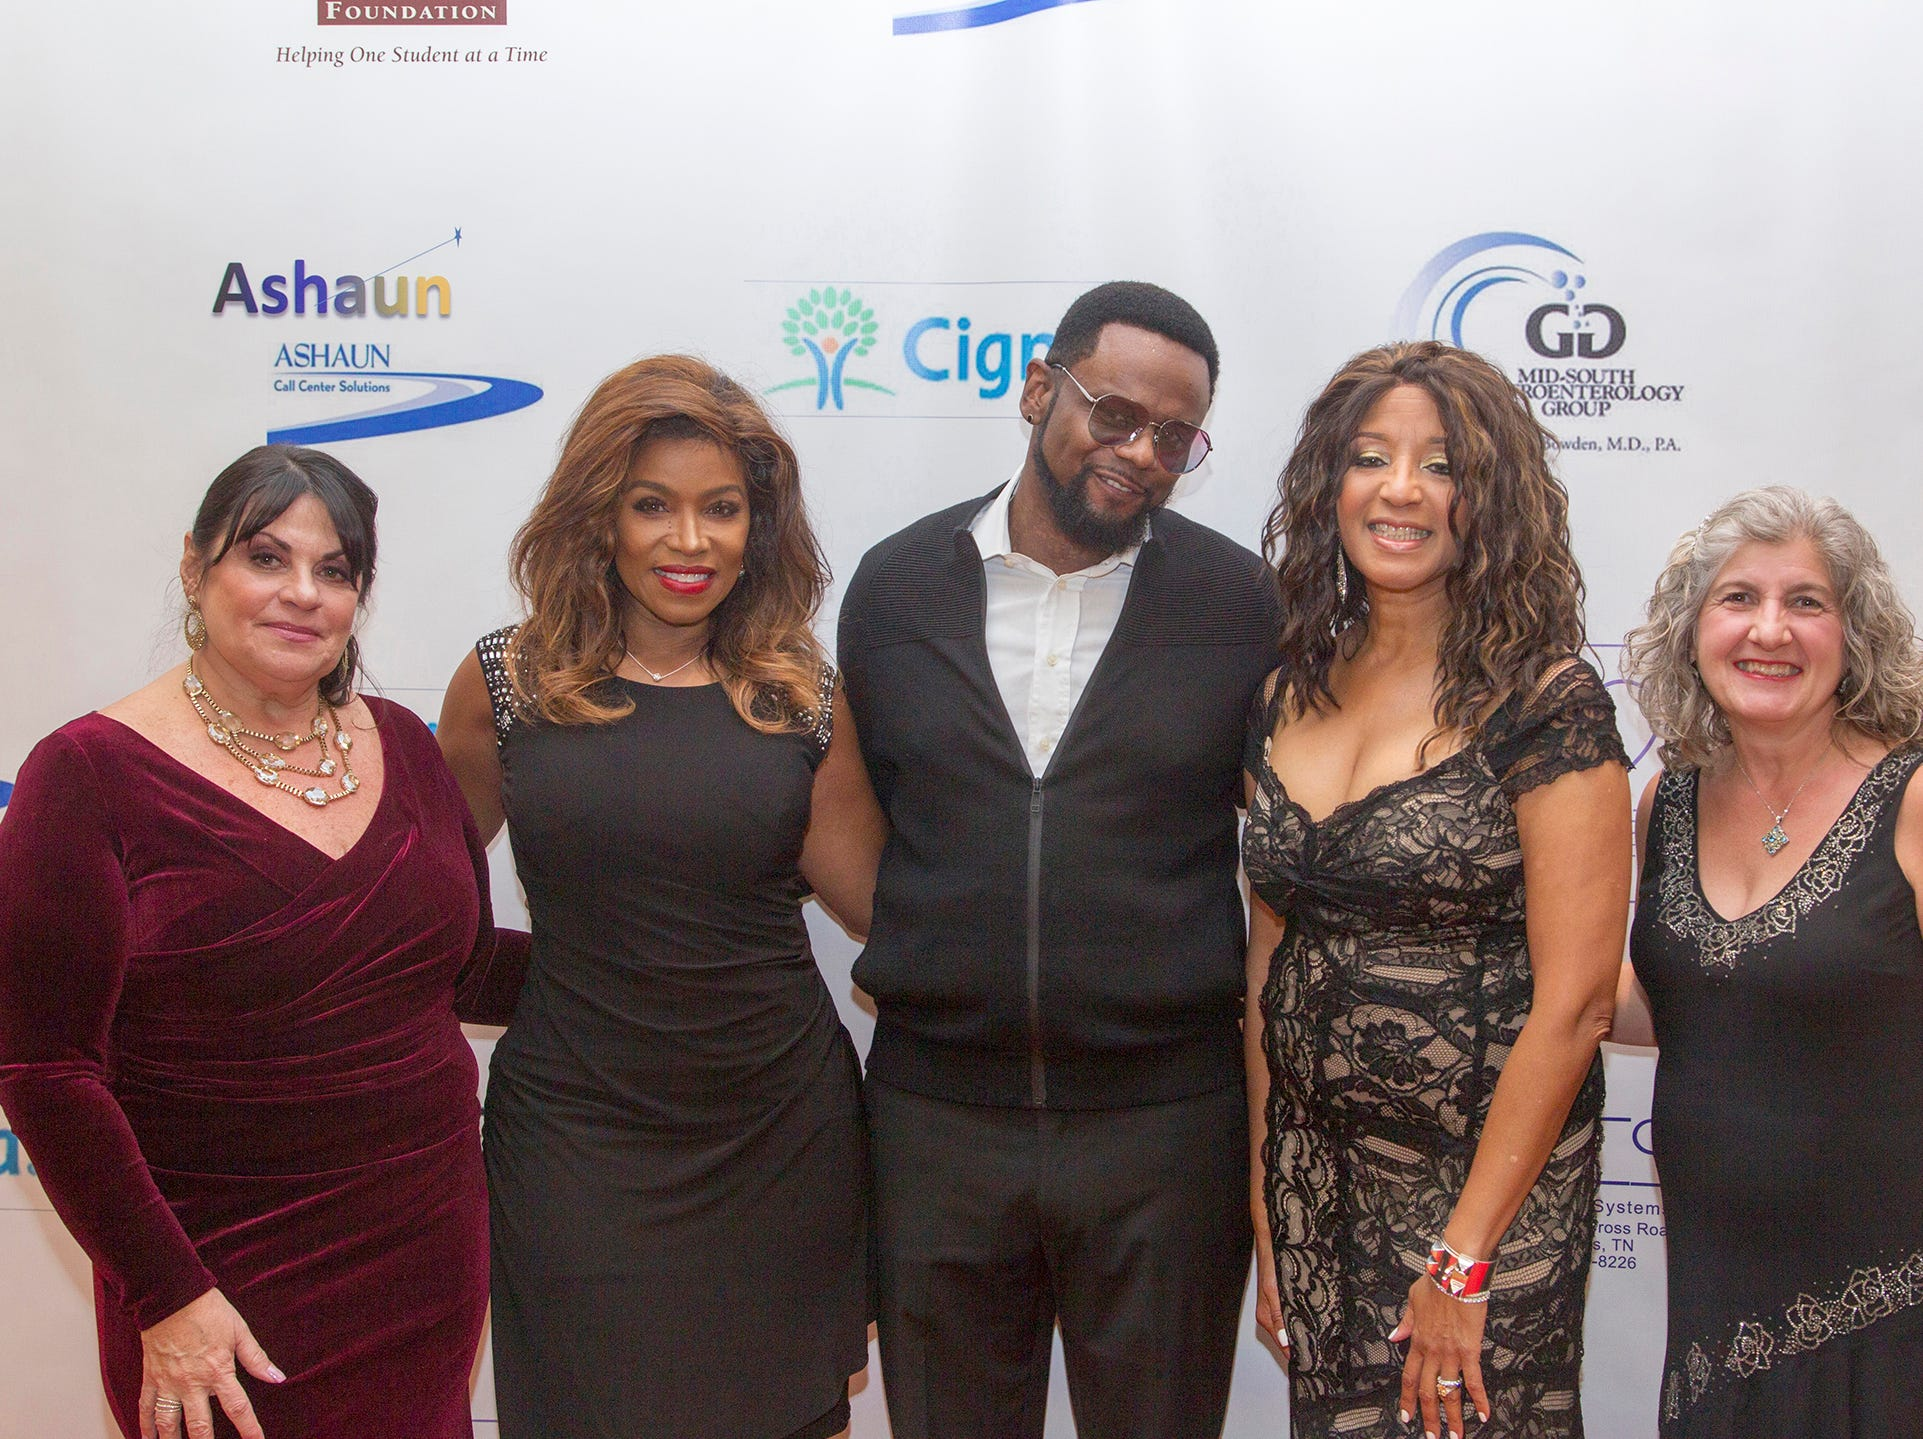 Leslie Vellios, Toni Yates, Carl THomas, Dr Sharon Banks-Williams,  . Jessie Banks Jessie Banks Foundation holds 16th annual Scholarship Awards Gala in Teaneck. 11/09/2018